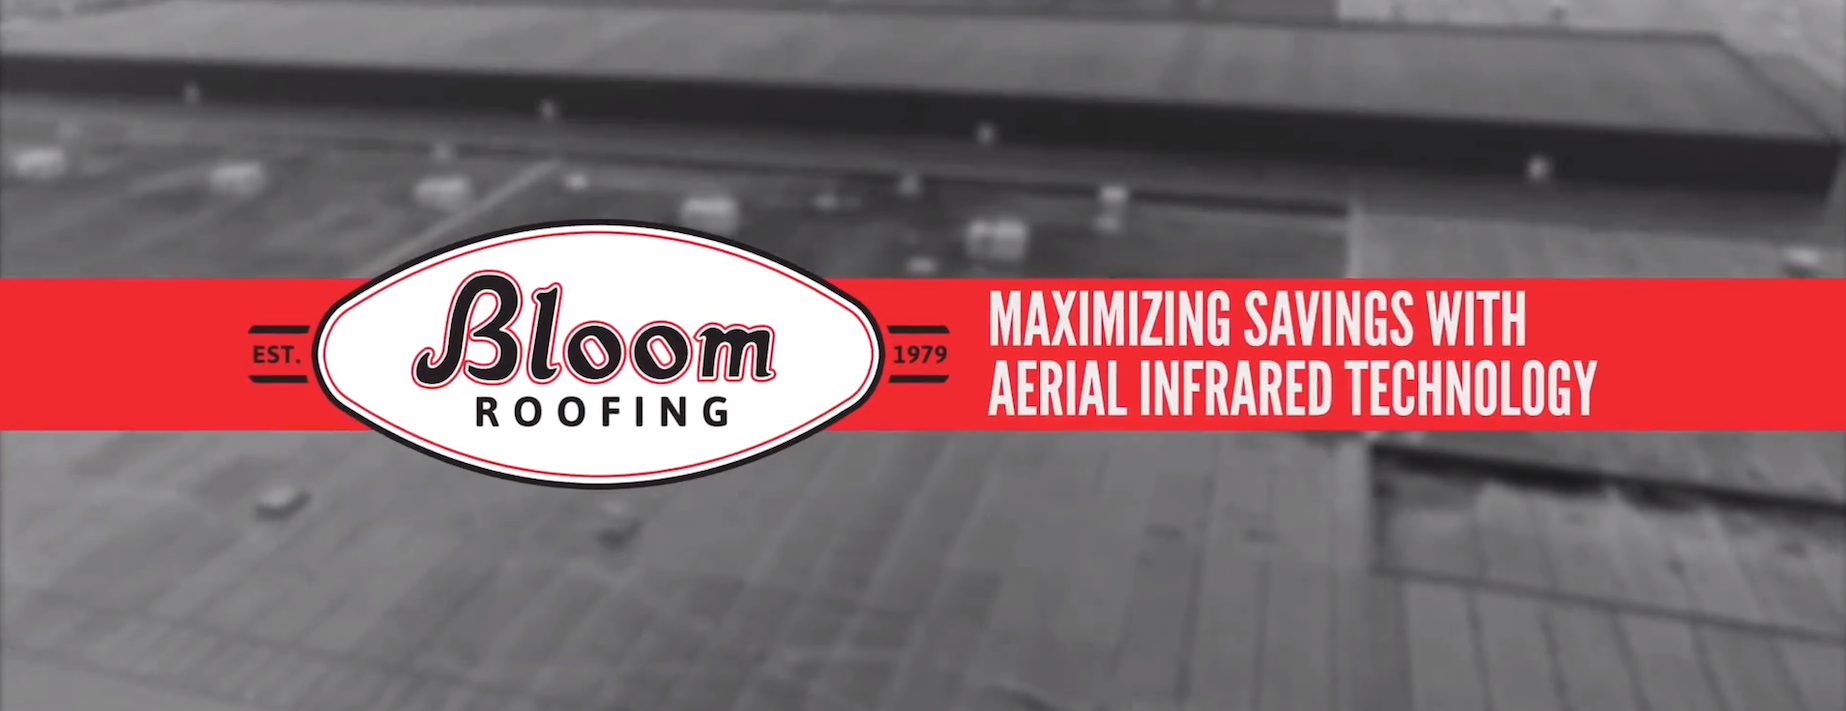 Infrared Technology Commercial Roofing Case Study